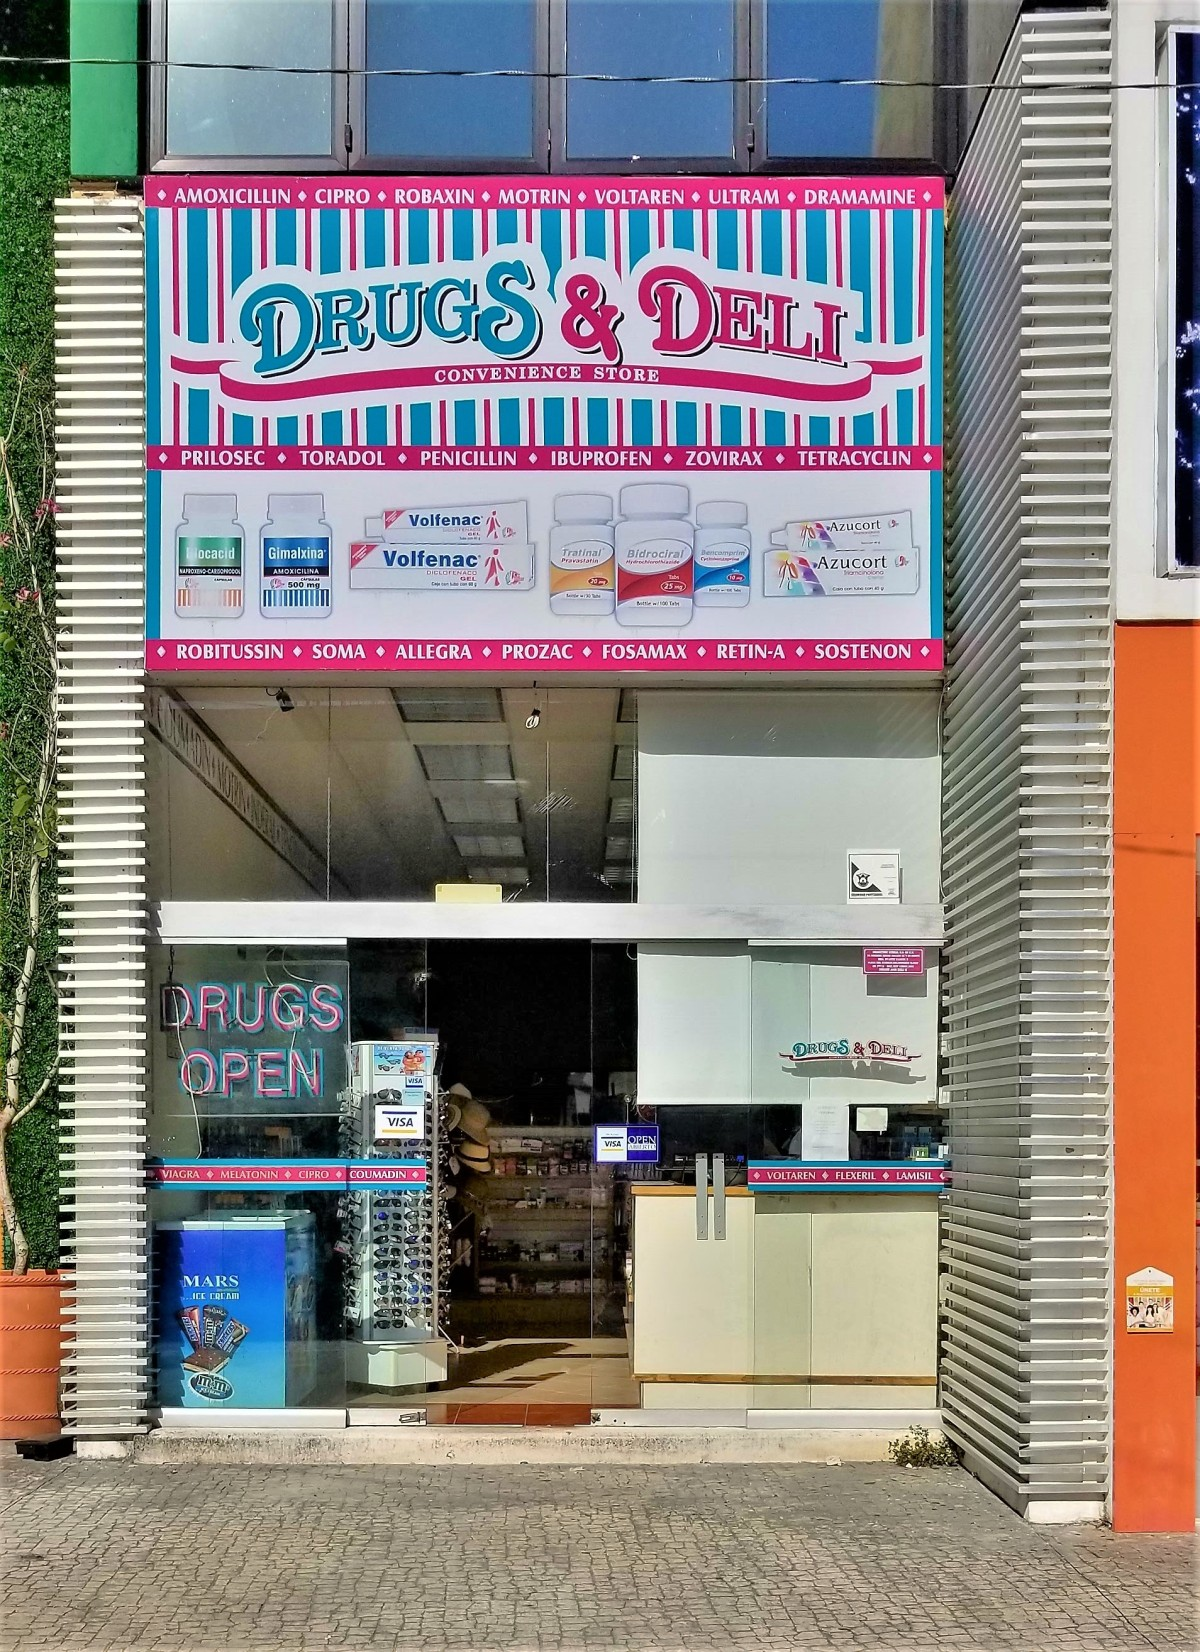 drugs and deli.jpg